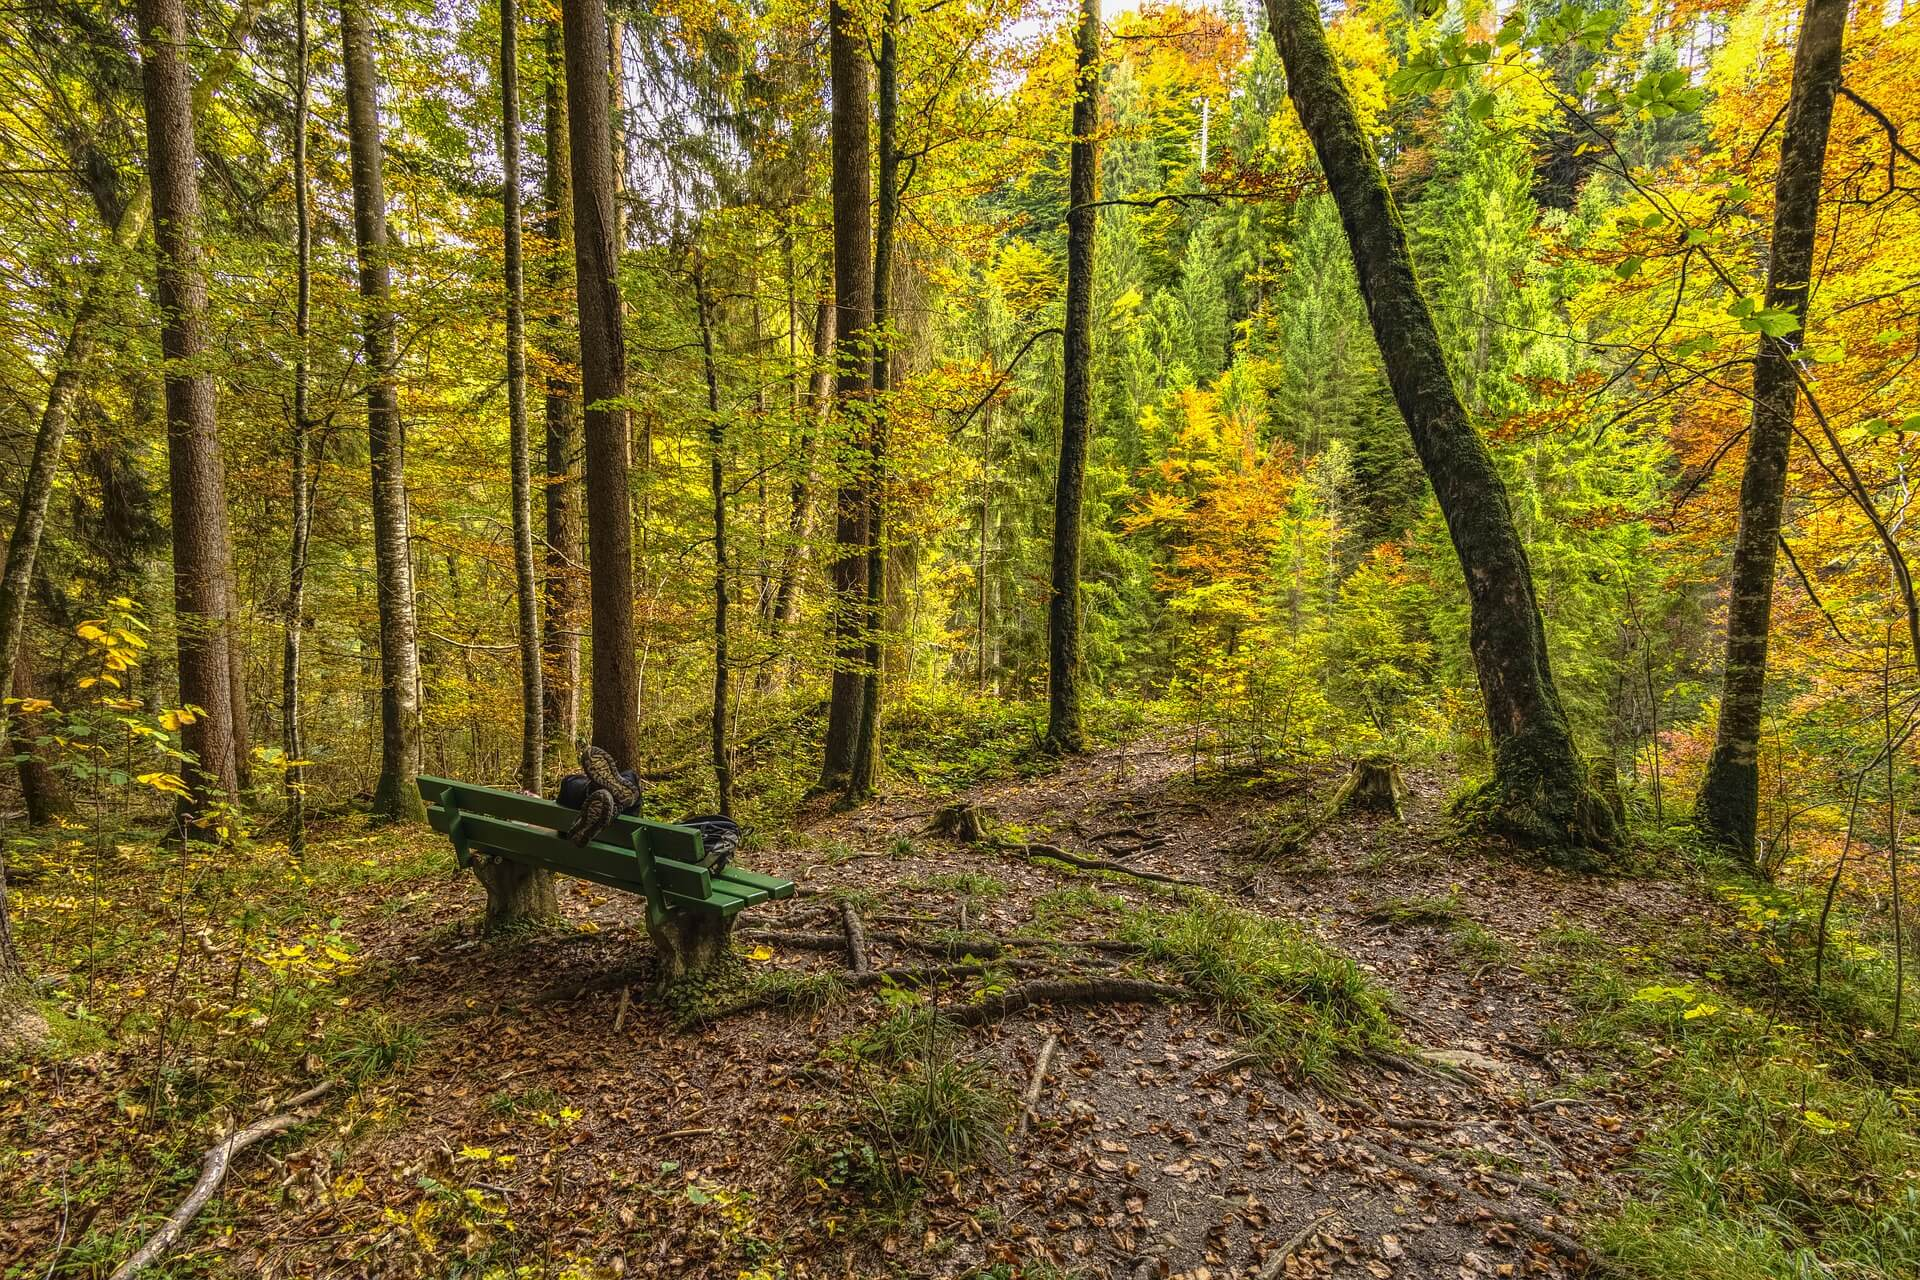 forest-g97082009a_1920